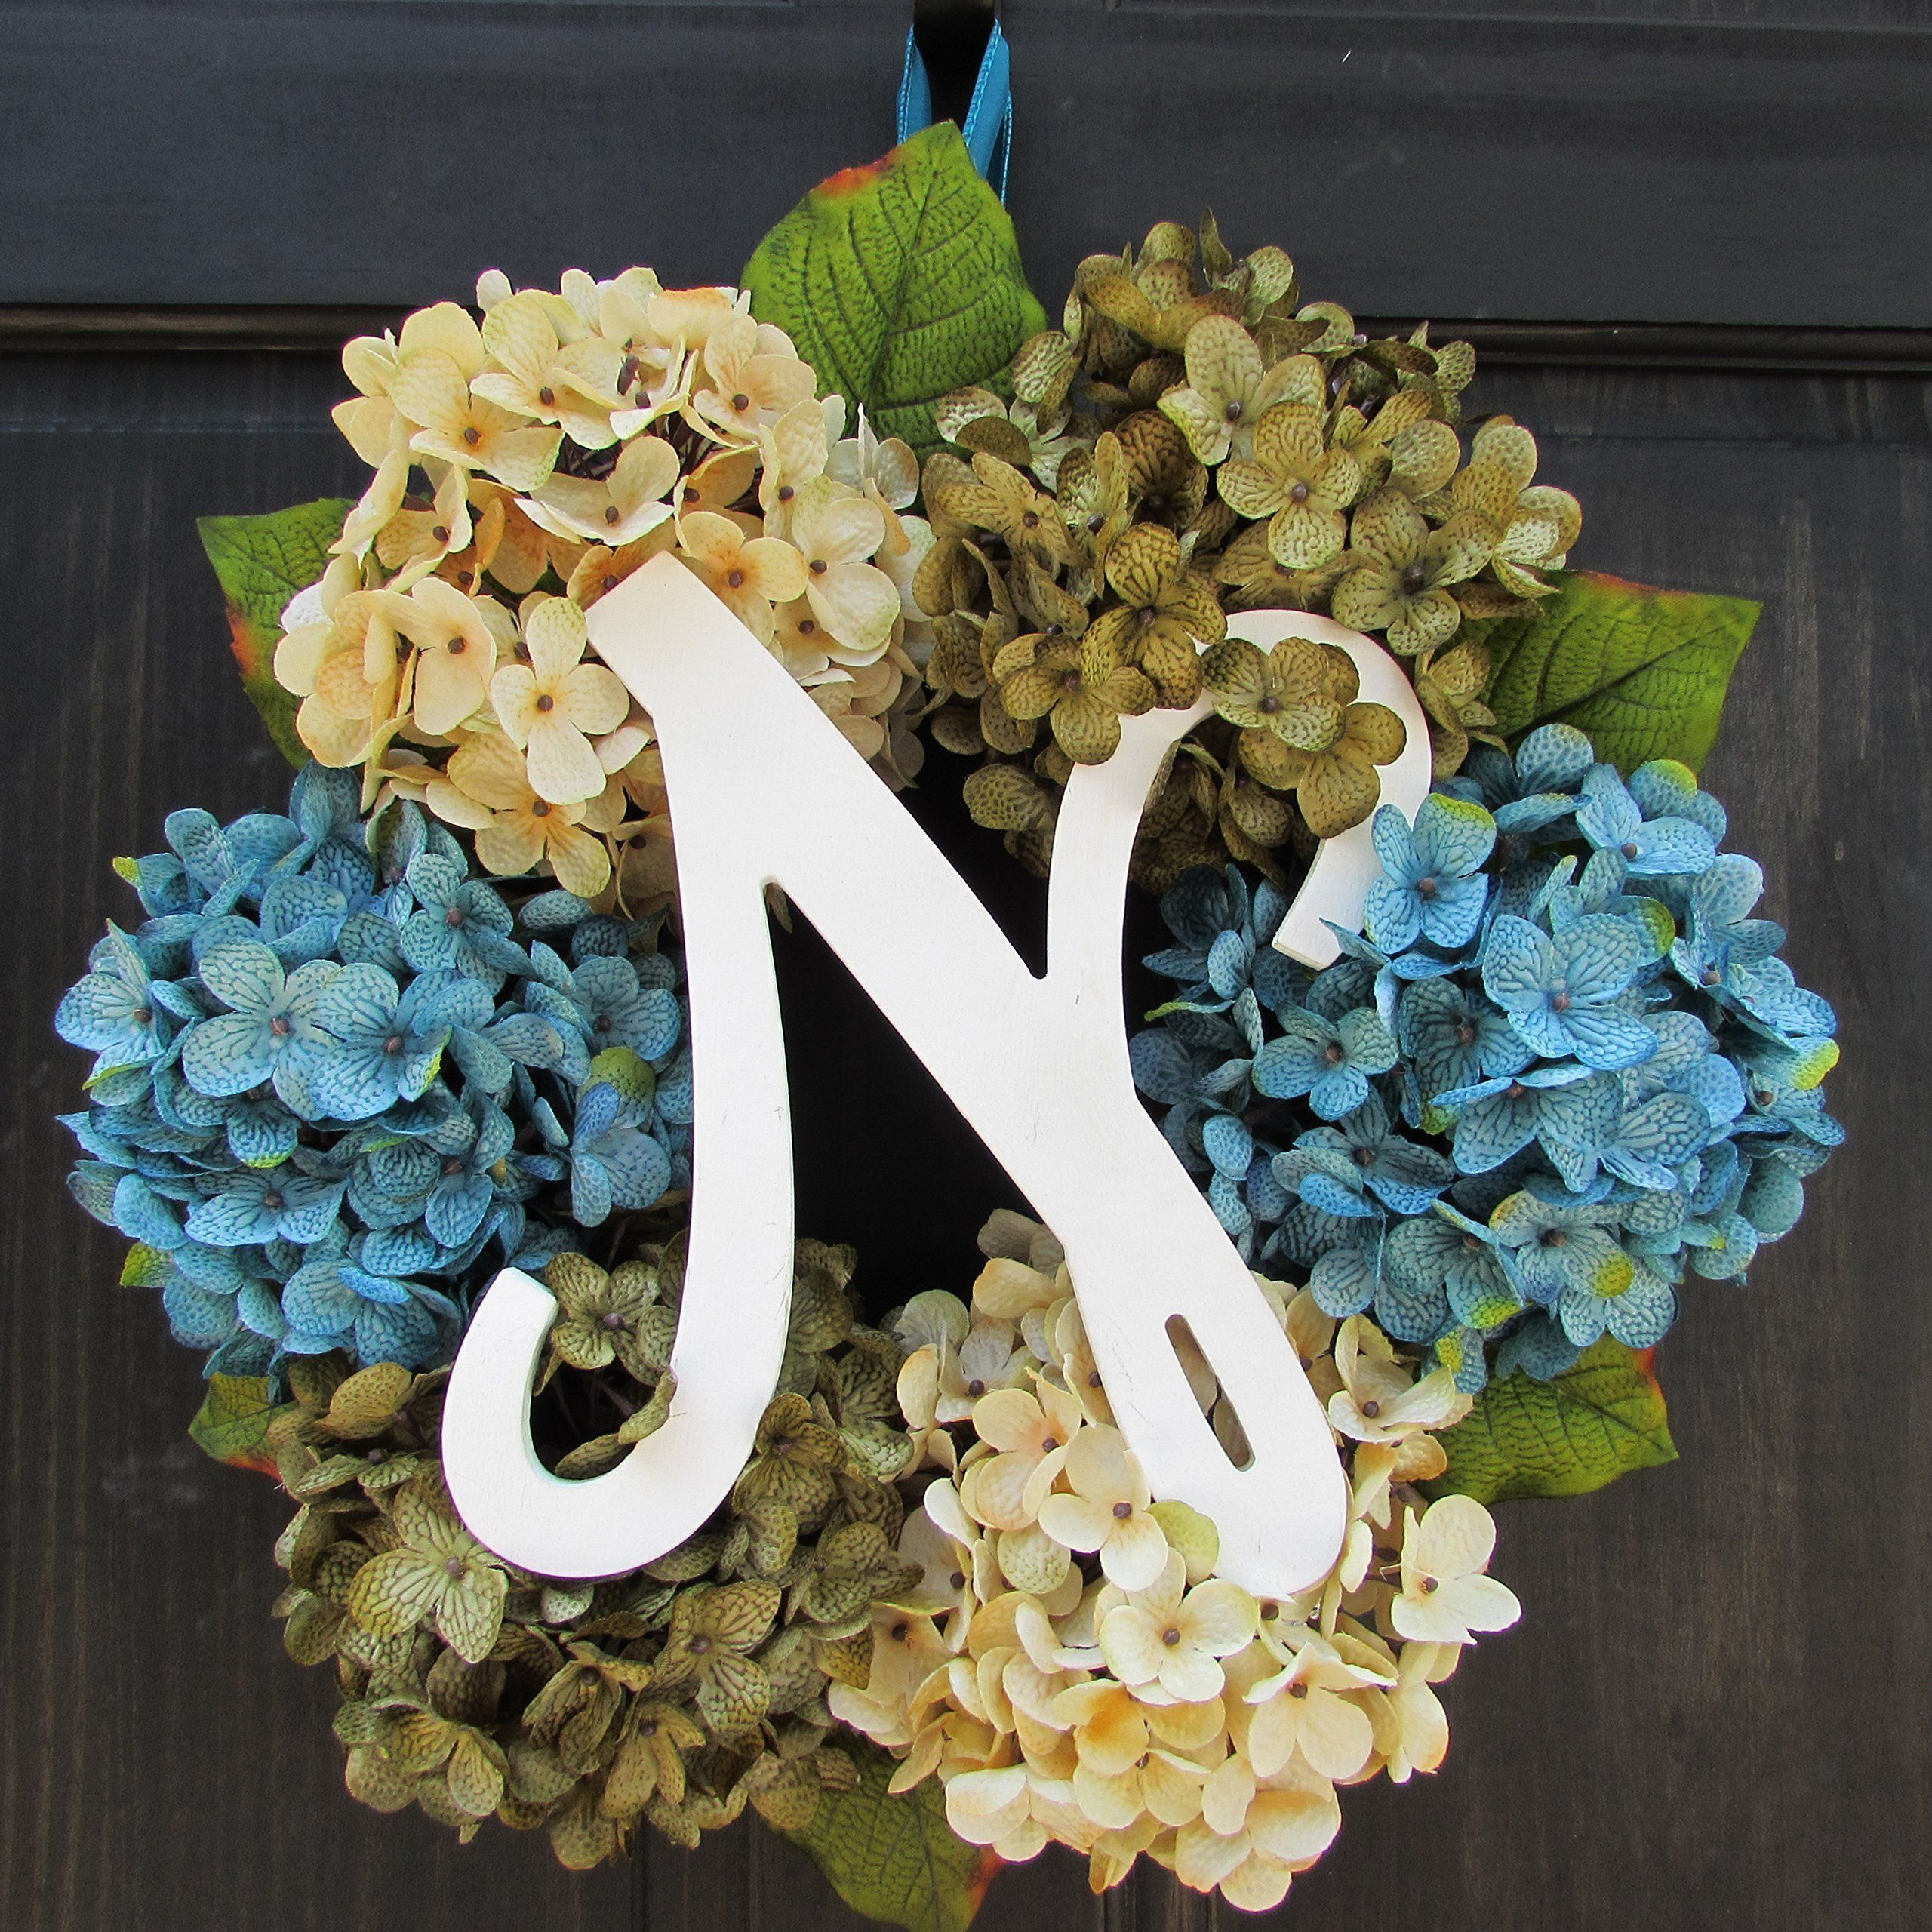 Personalized front door decorations - Personalized Spring Summer Hydrangea Wreath With Monogram Initial Front Door Hanger Letter Decoration